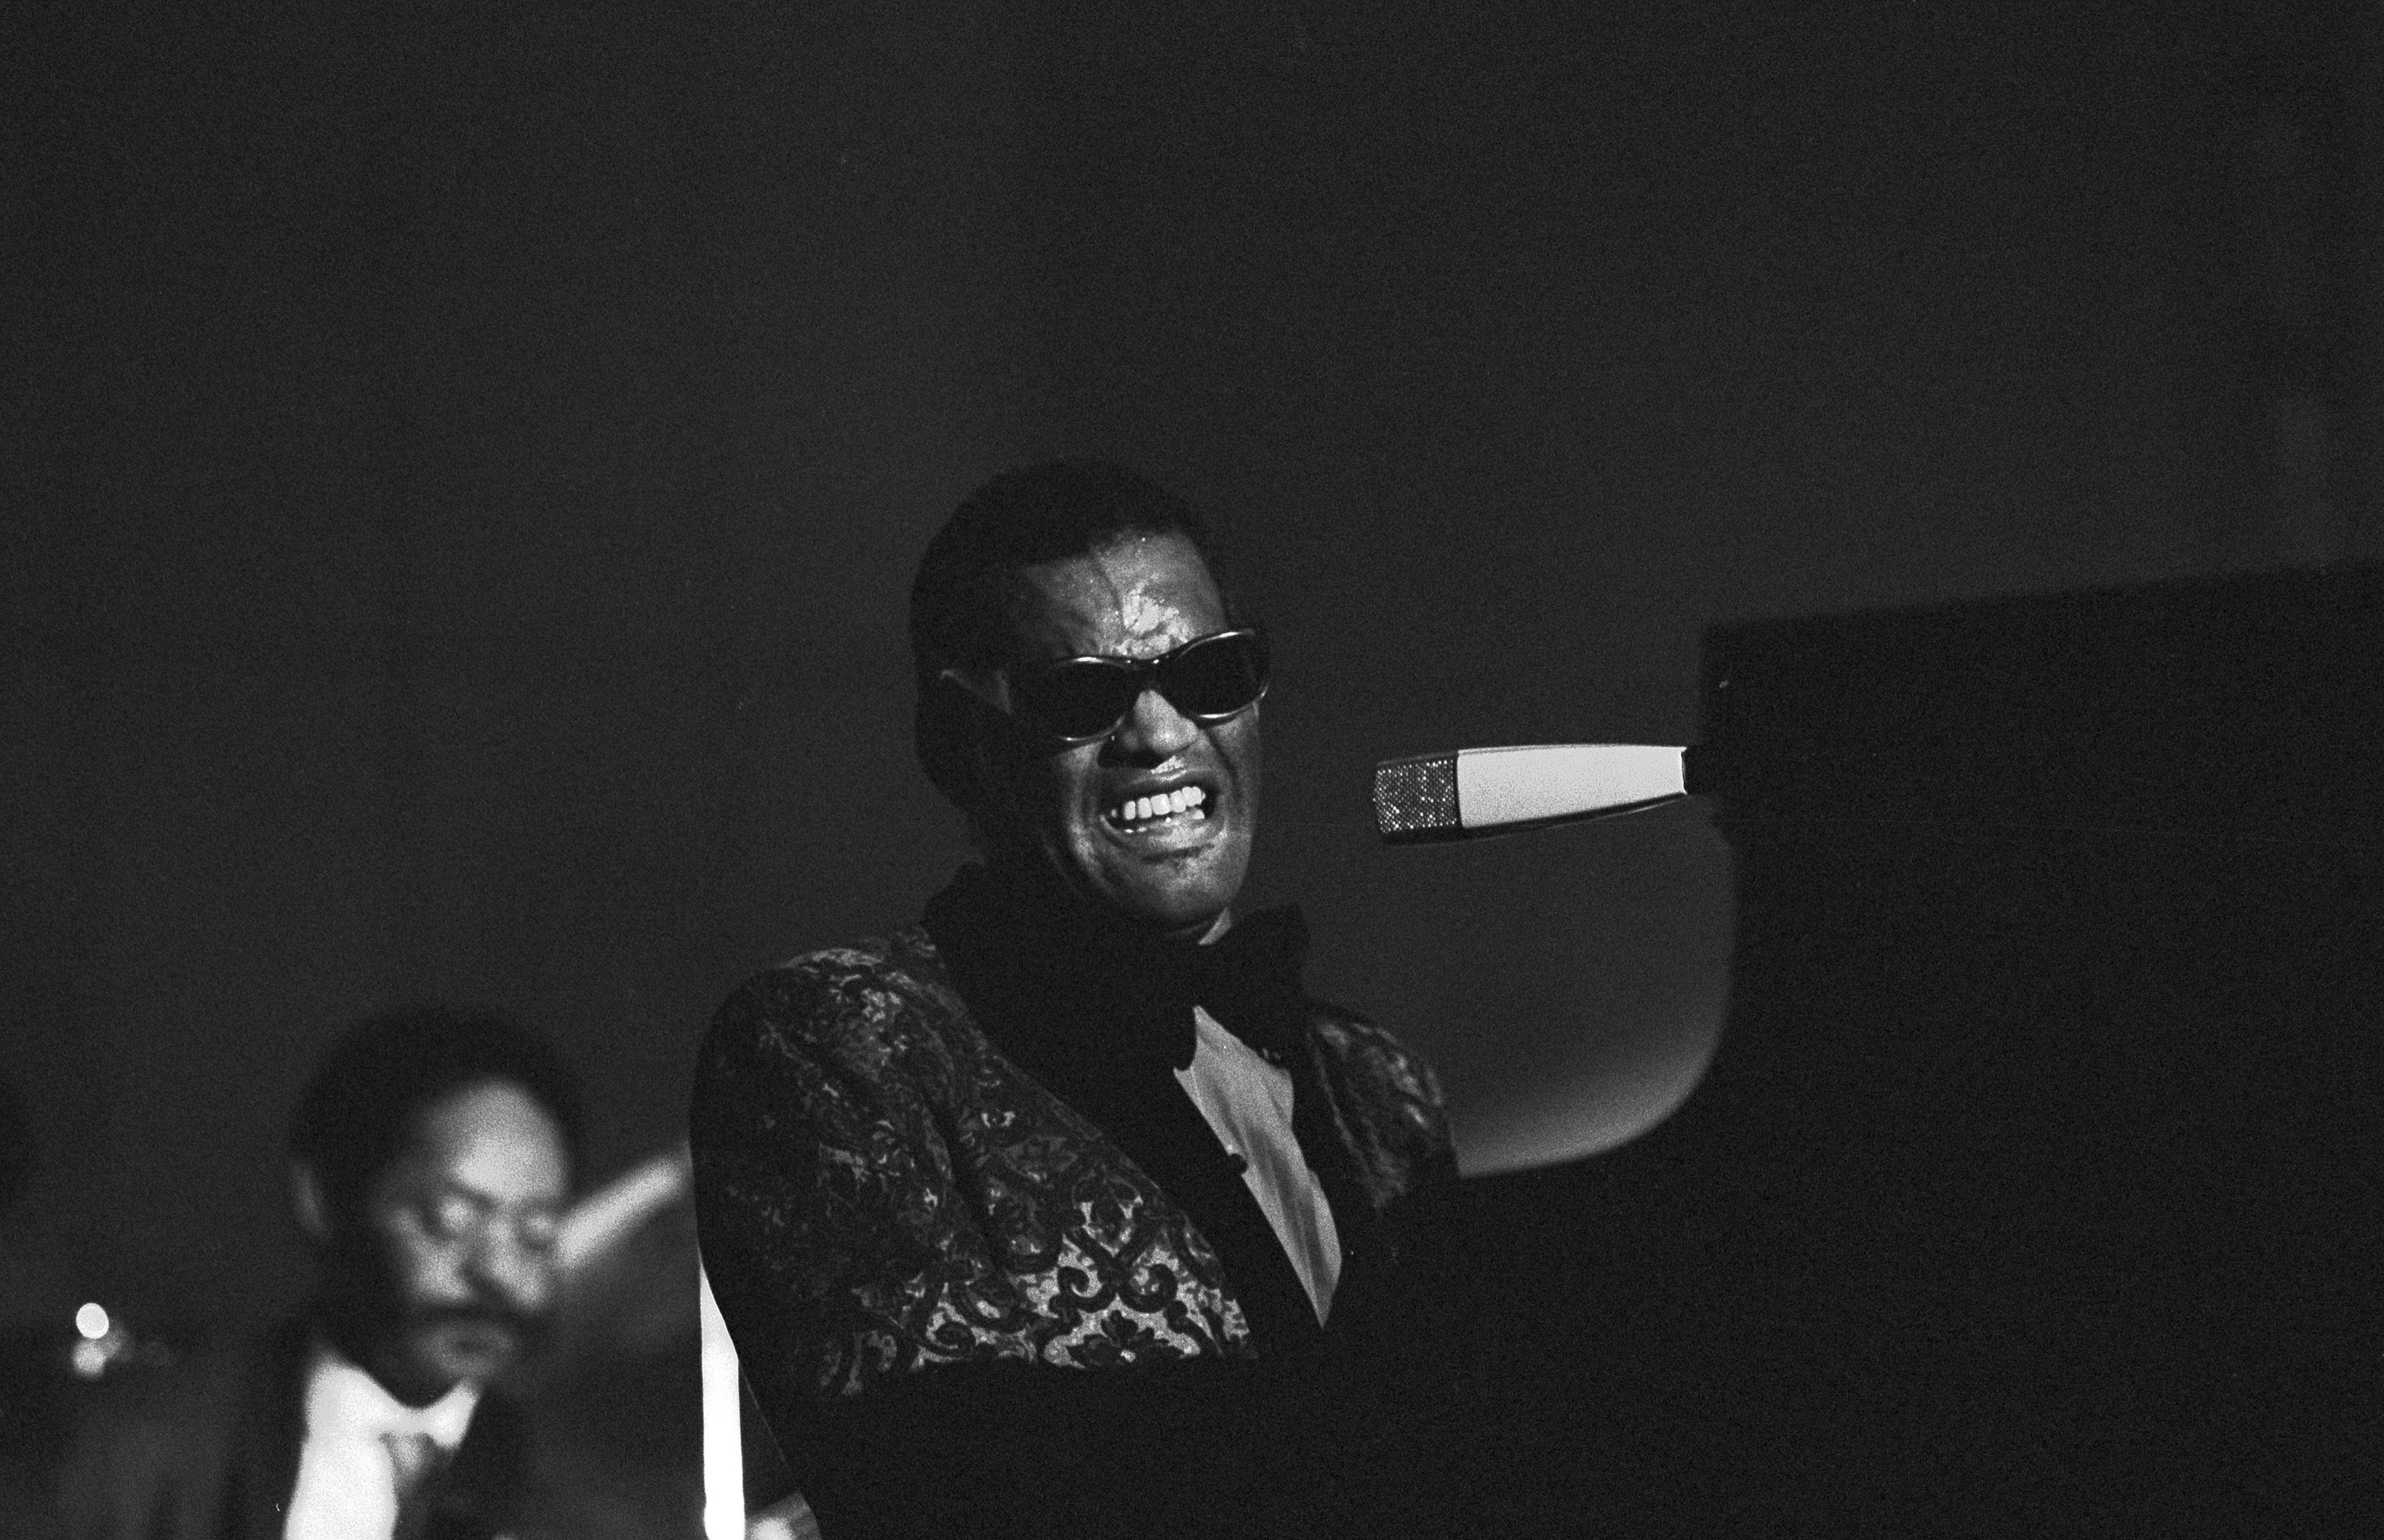 Ray Charles in der Hamburger Musikhalle, September 1971 | Photo By Heinrich Klaffs - Ray Carles, CC BY-SA 2.0, Wikimedia Commons Images